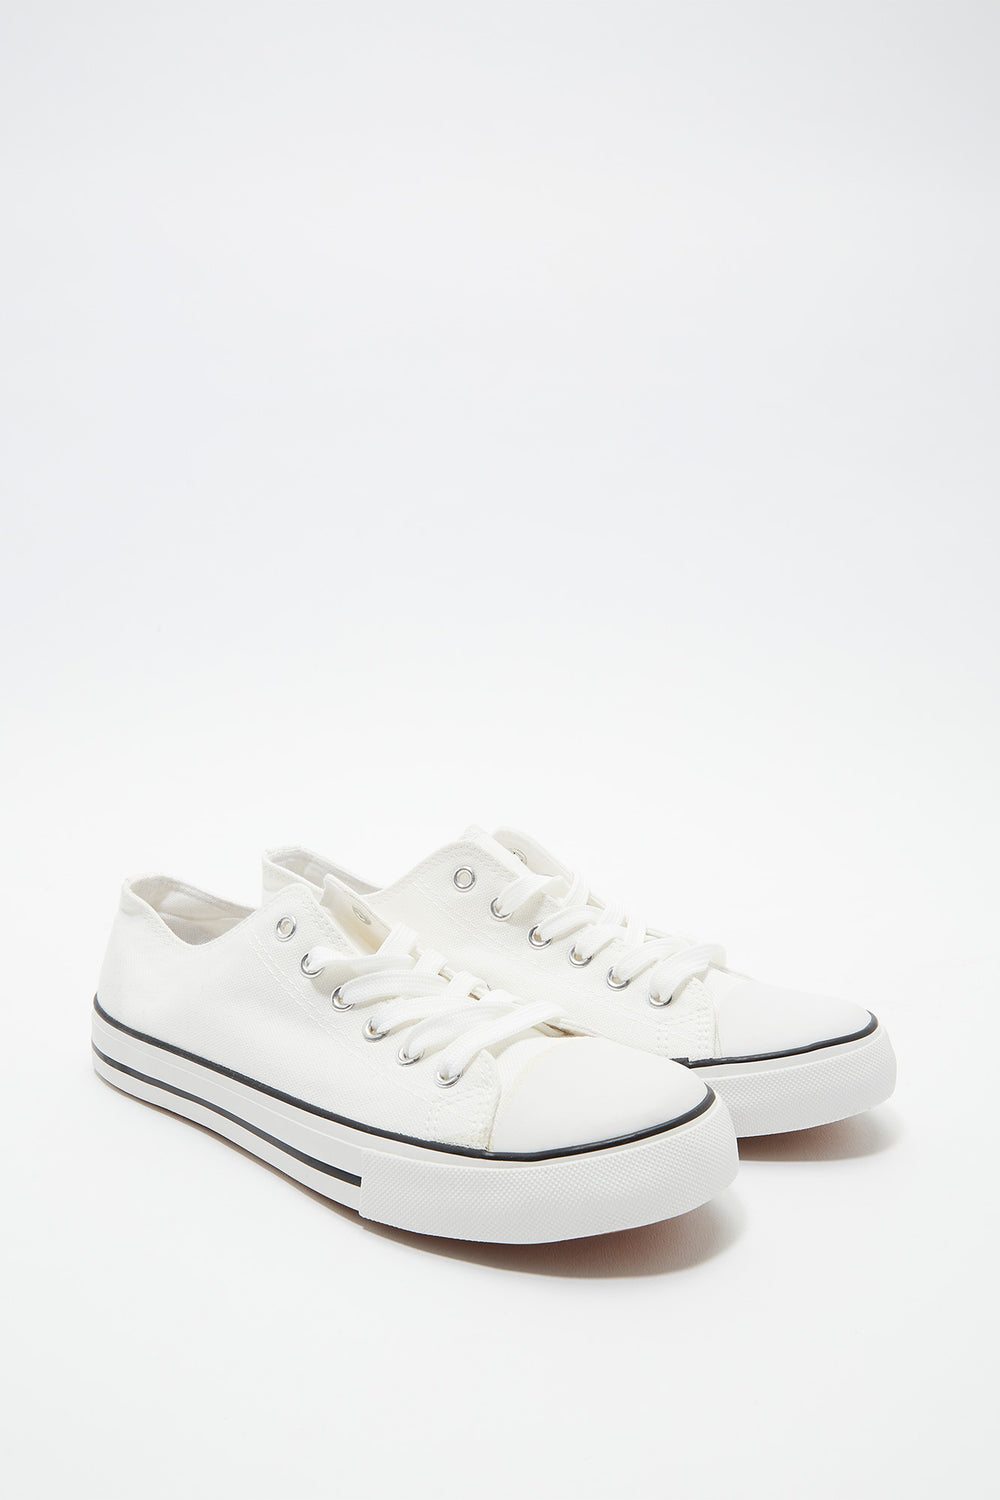 Basic Low Top Lace-Up Sneaker White